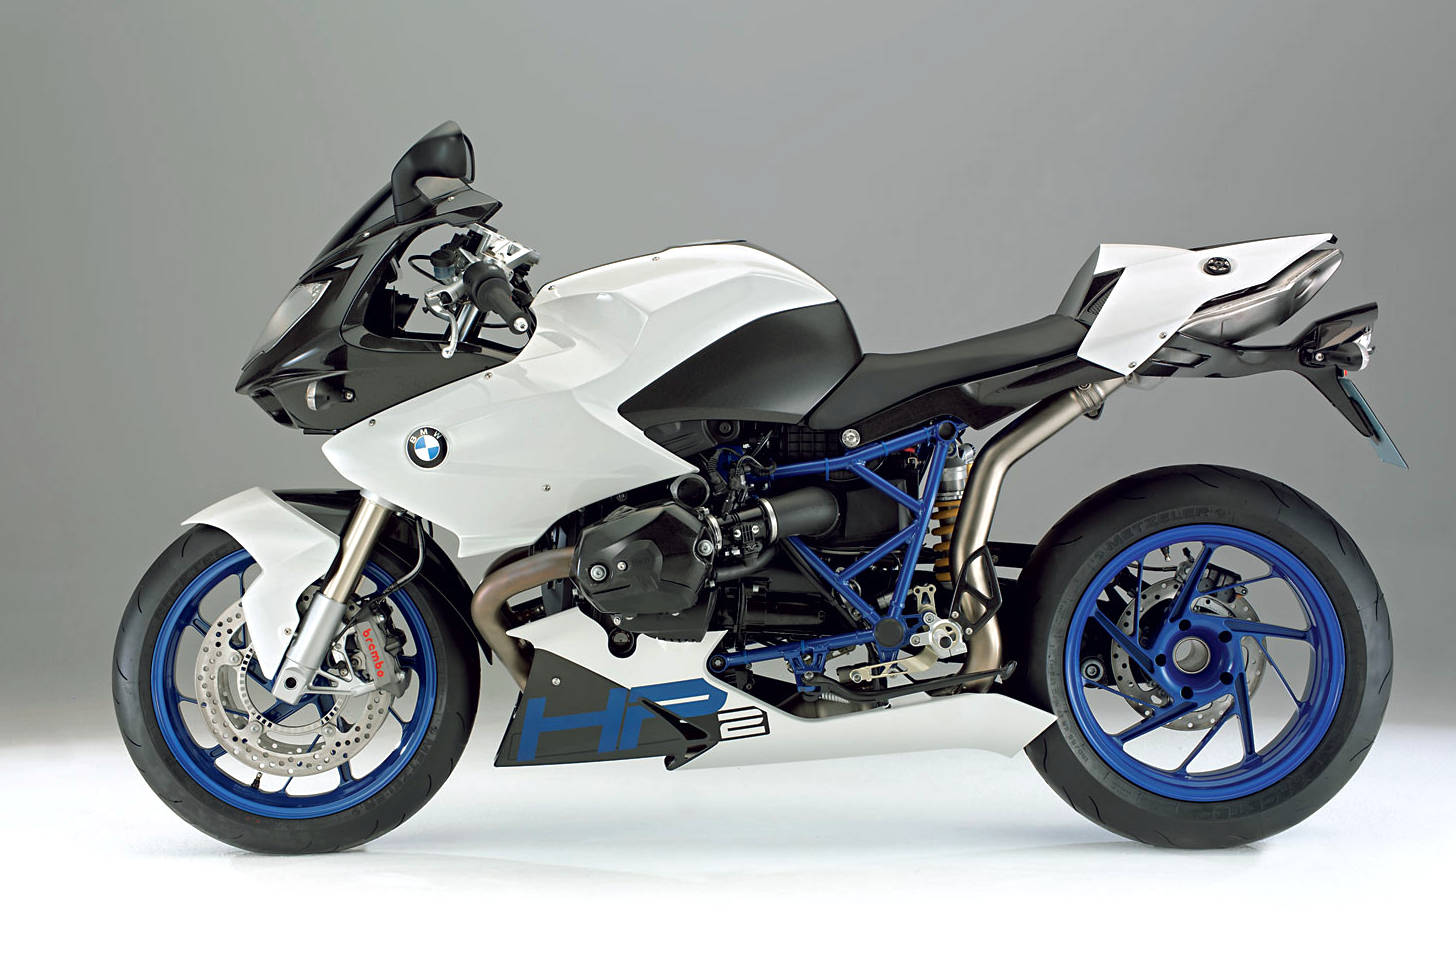 Bmw Preparing A New Boxer Sport Bike Motorcycledaily Com Motorcycle News Editorials Product Reviews And Bike Reviews